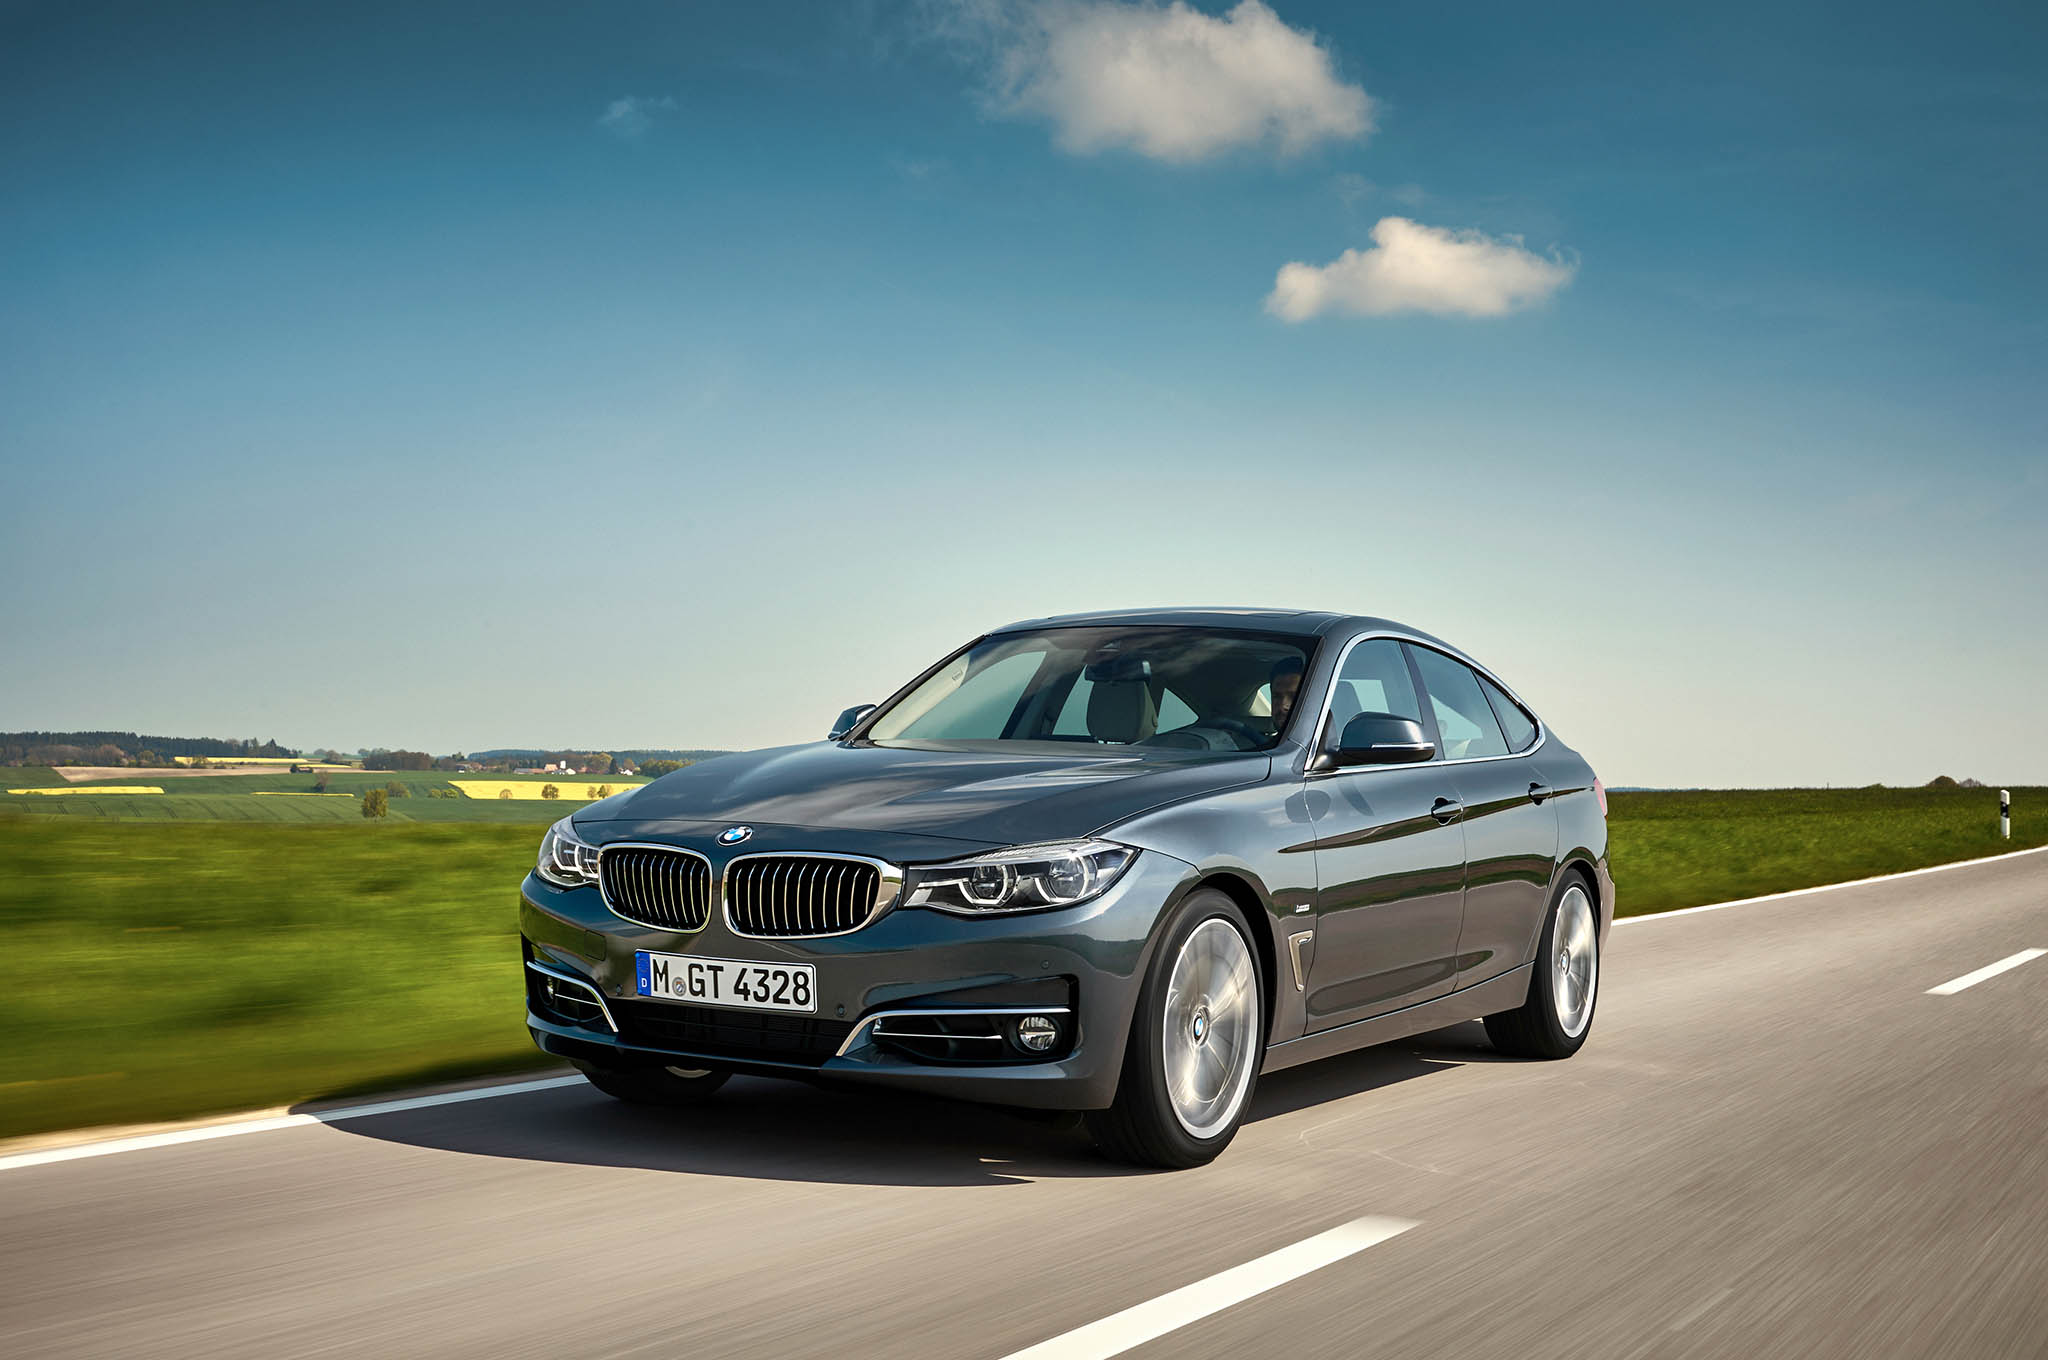 refreshed bmw 3 series gran turismo debuts for europe automobile magazine. Black Bedroom Furniture Sets. Home Design Ideas